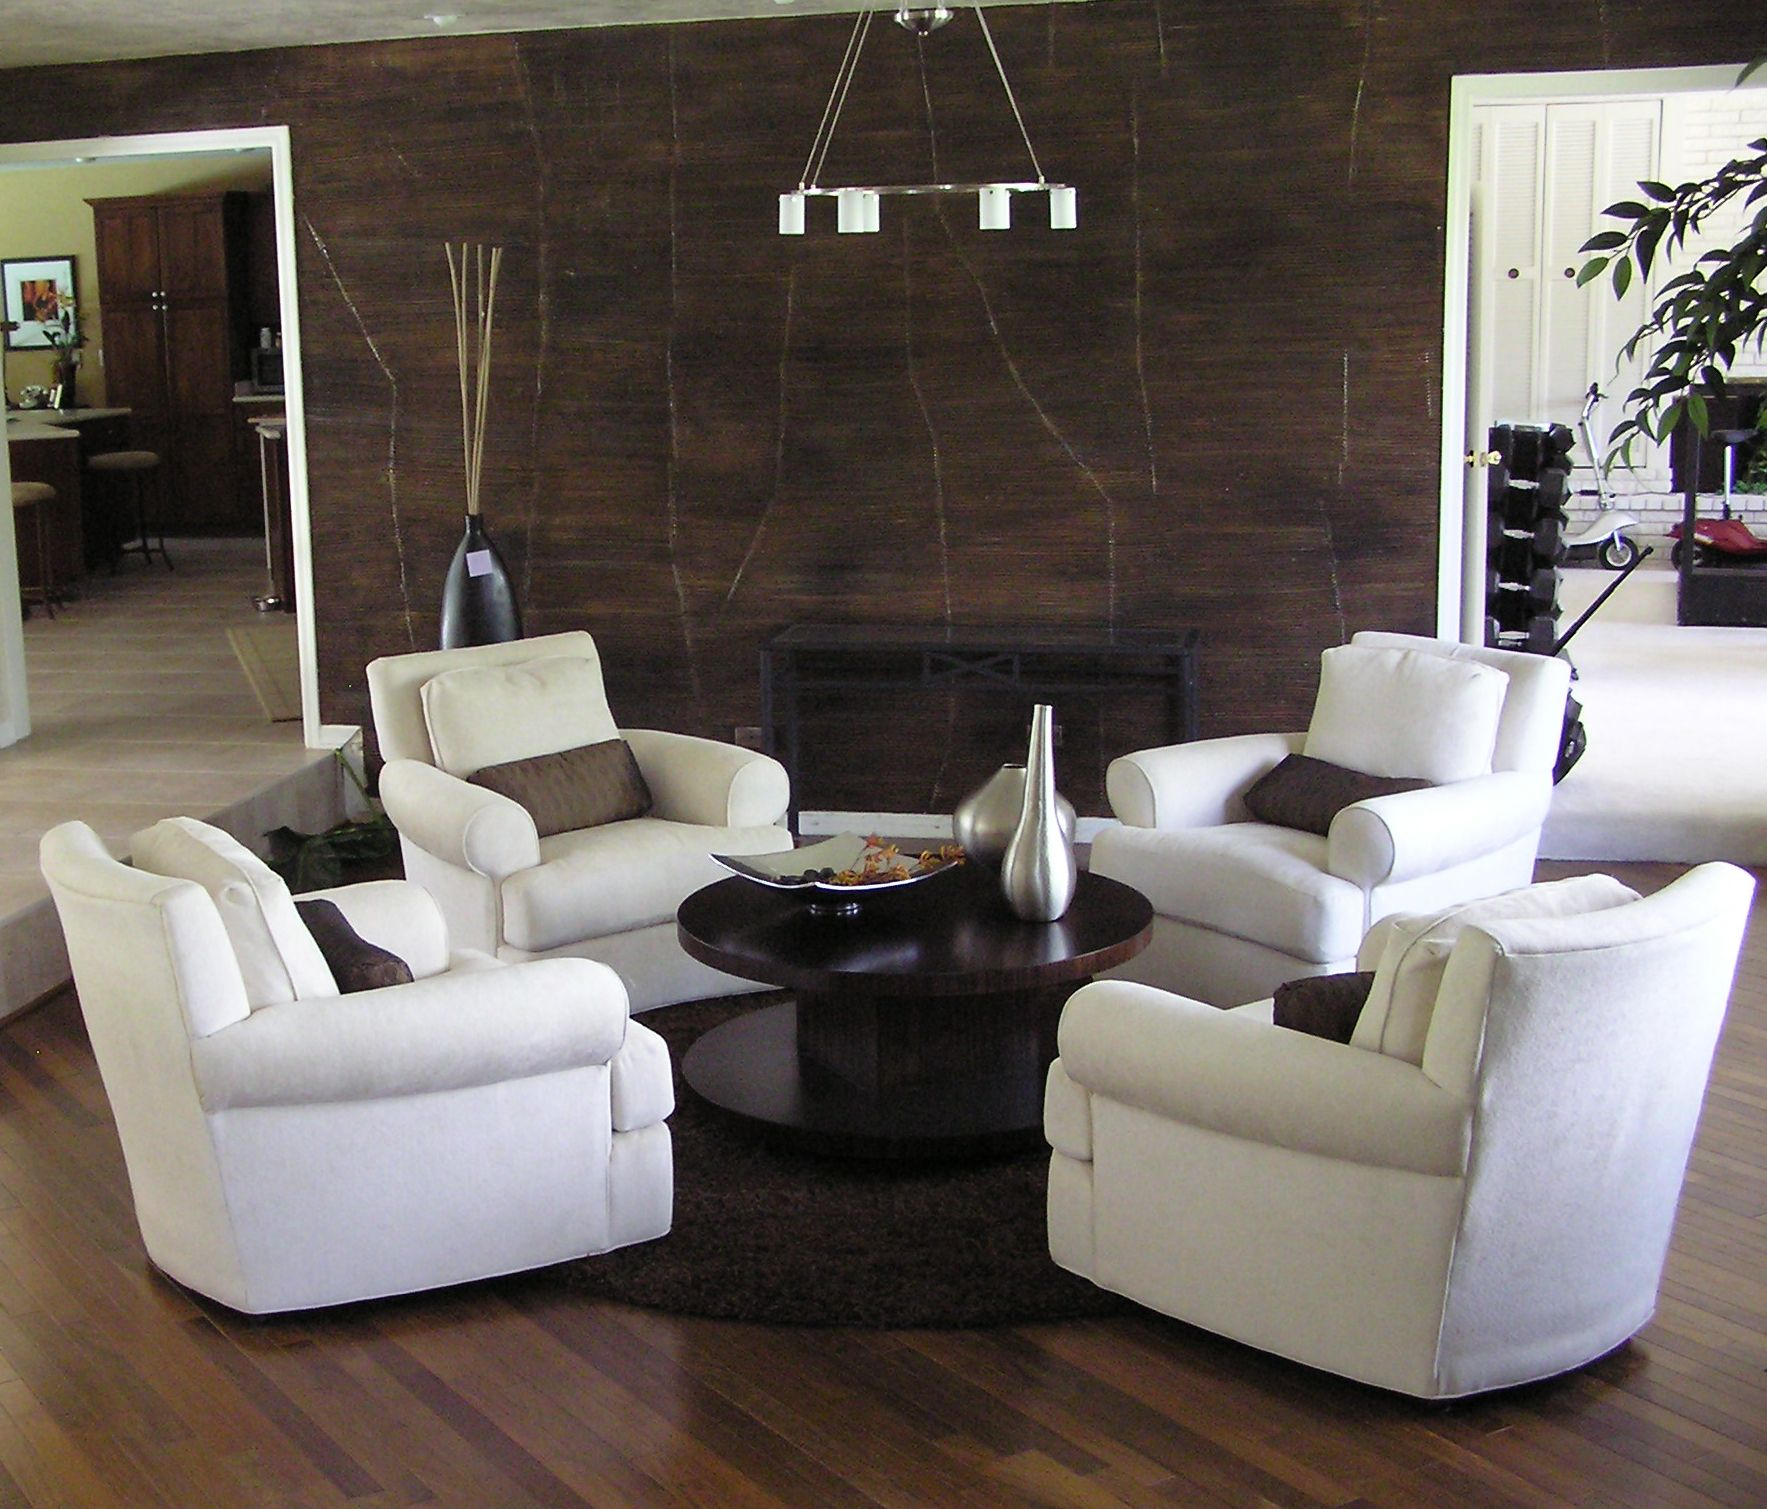 Cool Dark Hardwood Floors And White Walls  House Floor Plans Awesome Wooden Floor Living Room Designs Inspiration Design